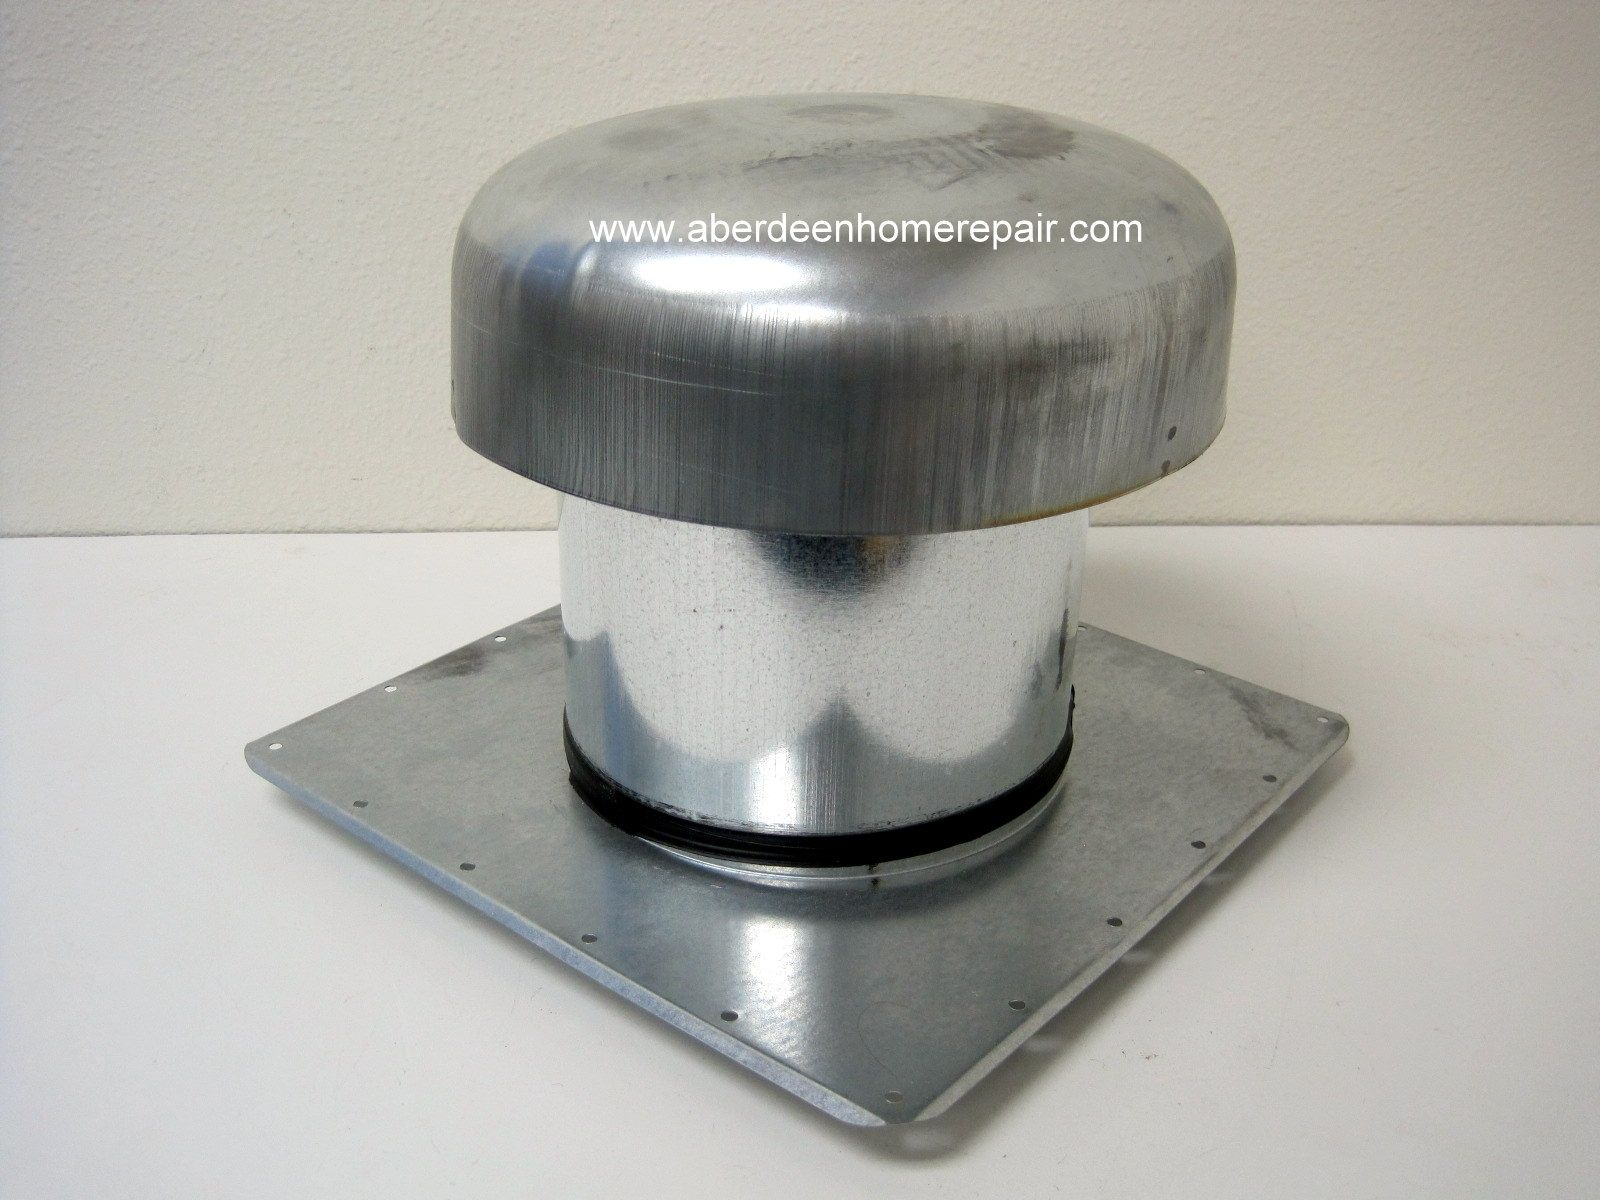 Kitchen Exhaust Fan Roof Vents | http://urresults.us/ | Pinterest ... for Industrial Roof Exhaust Fan  289hul